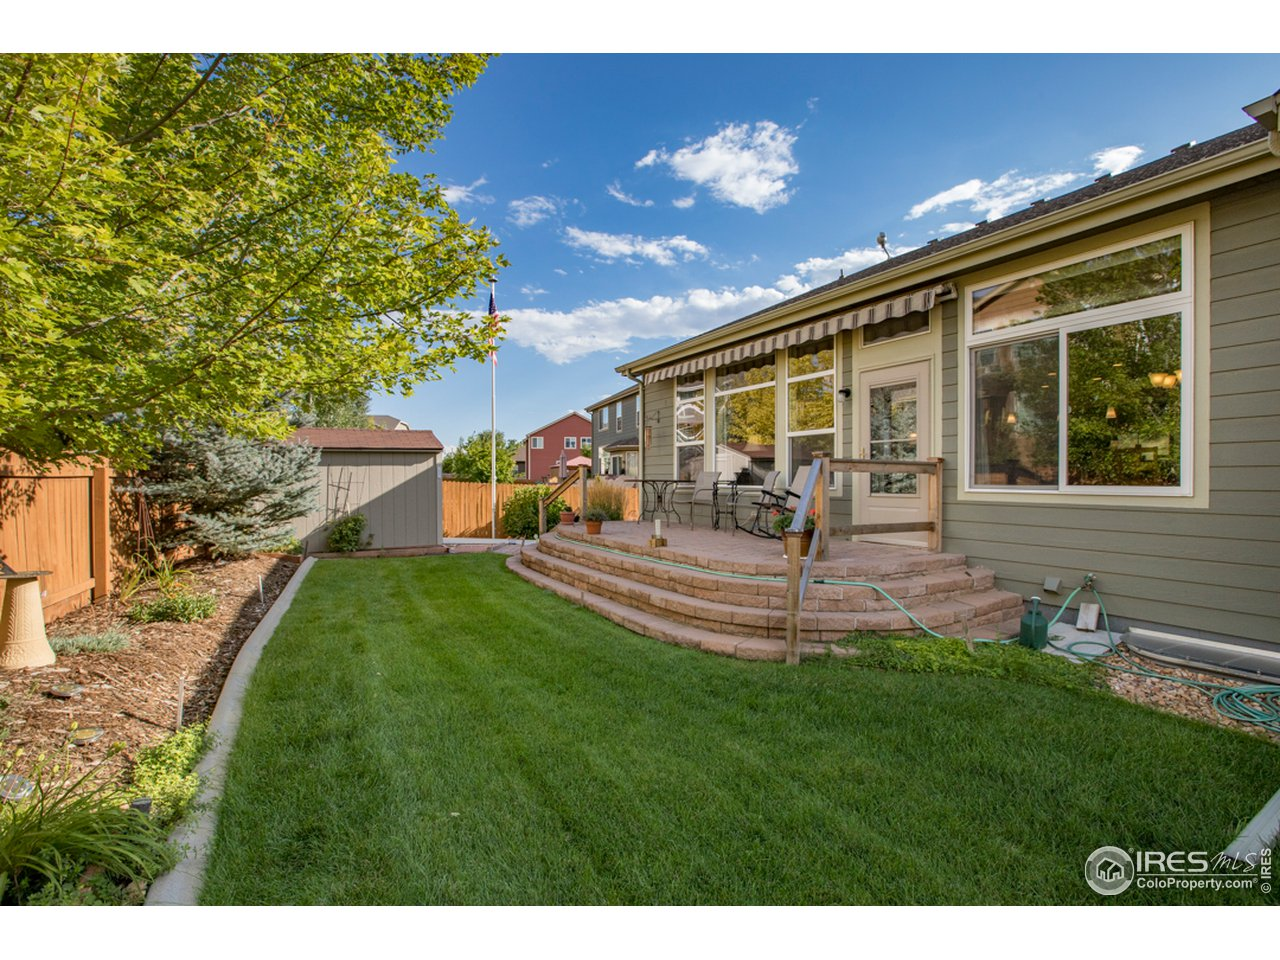 Thanks for visiting 2775 Blue Acona Way!